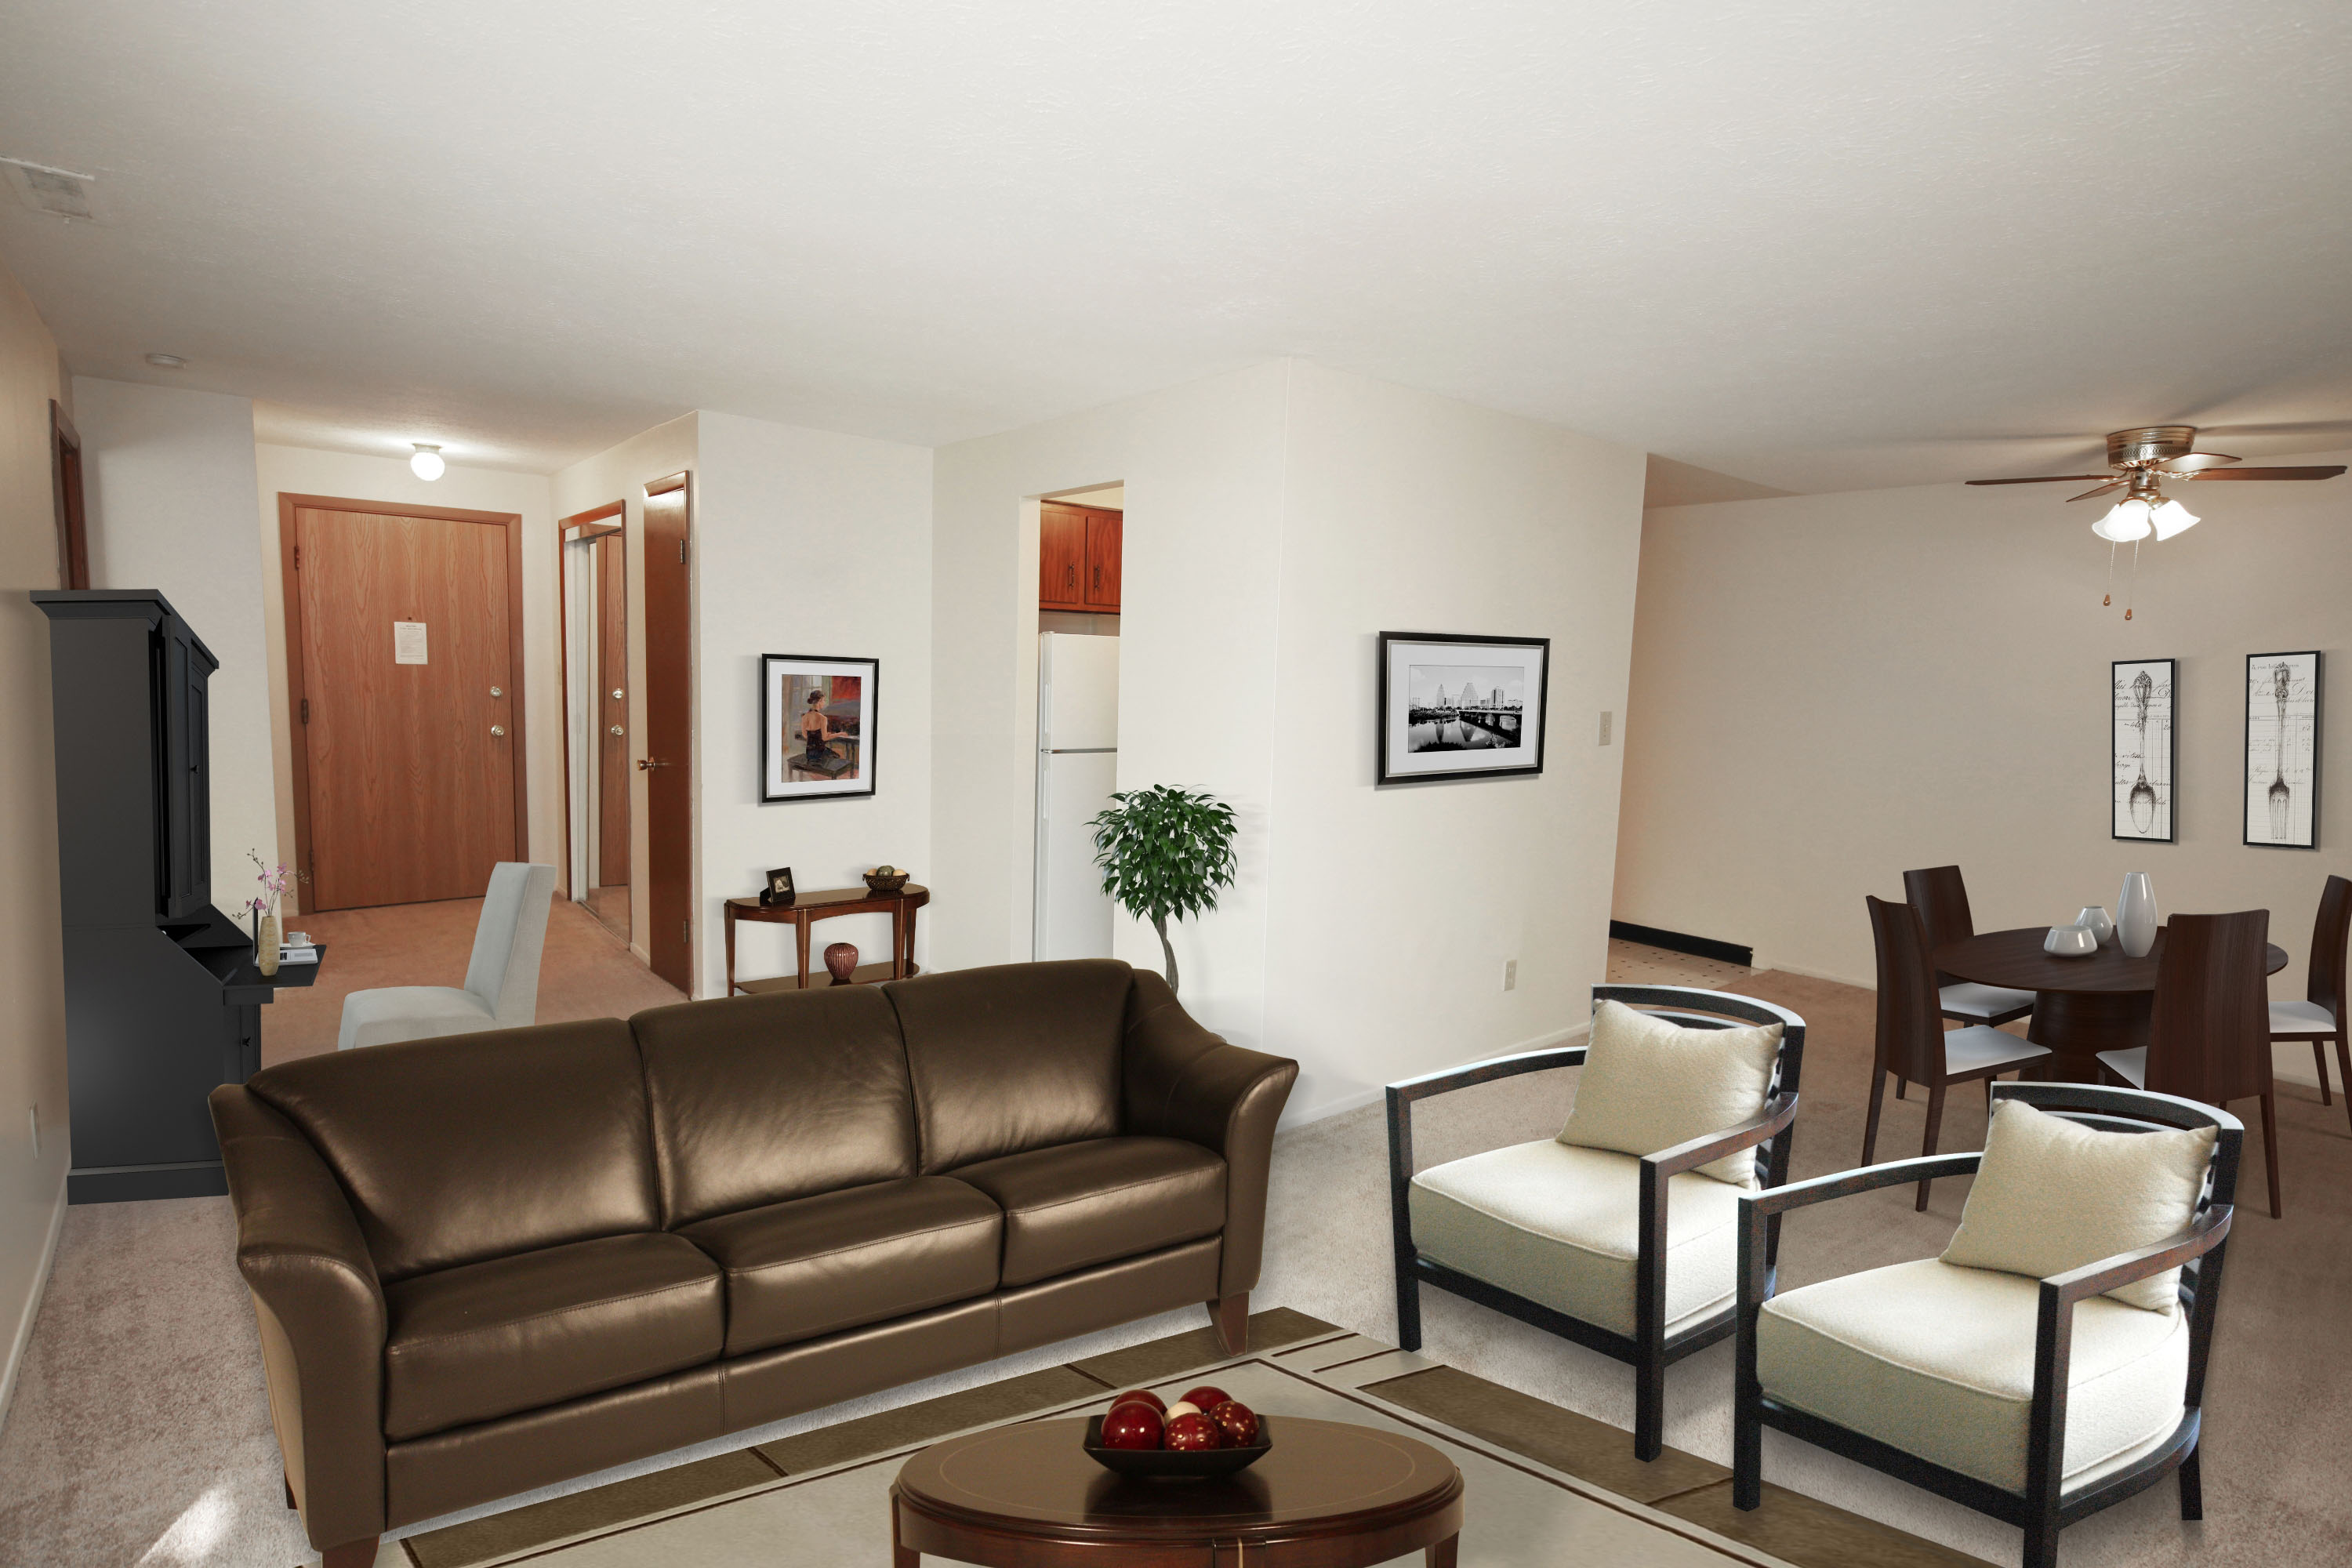 2C Living Room Furnished at the Greenridge on Euclid Apartments in Euclid, OH